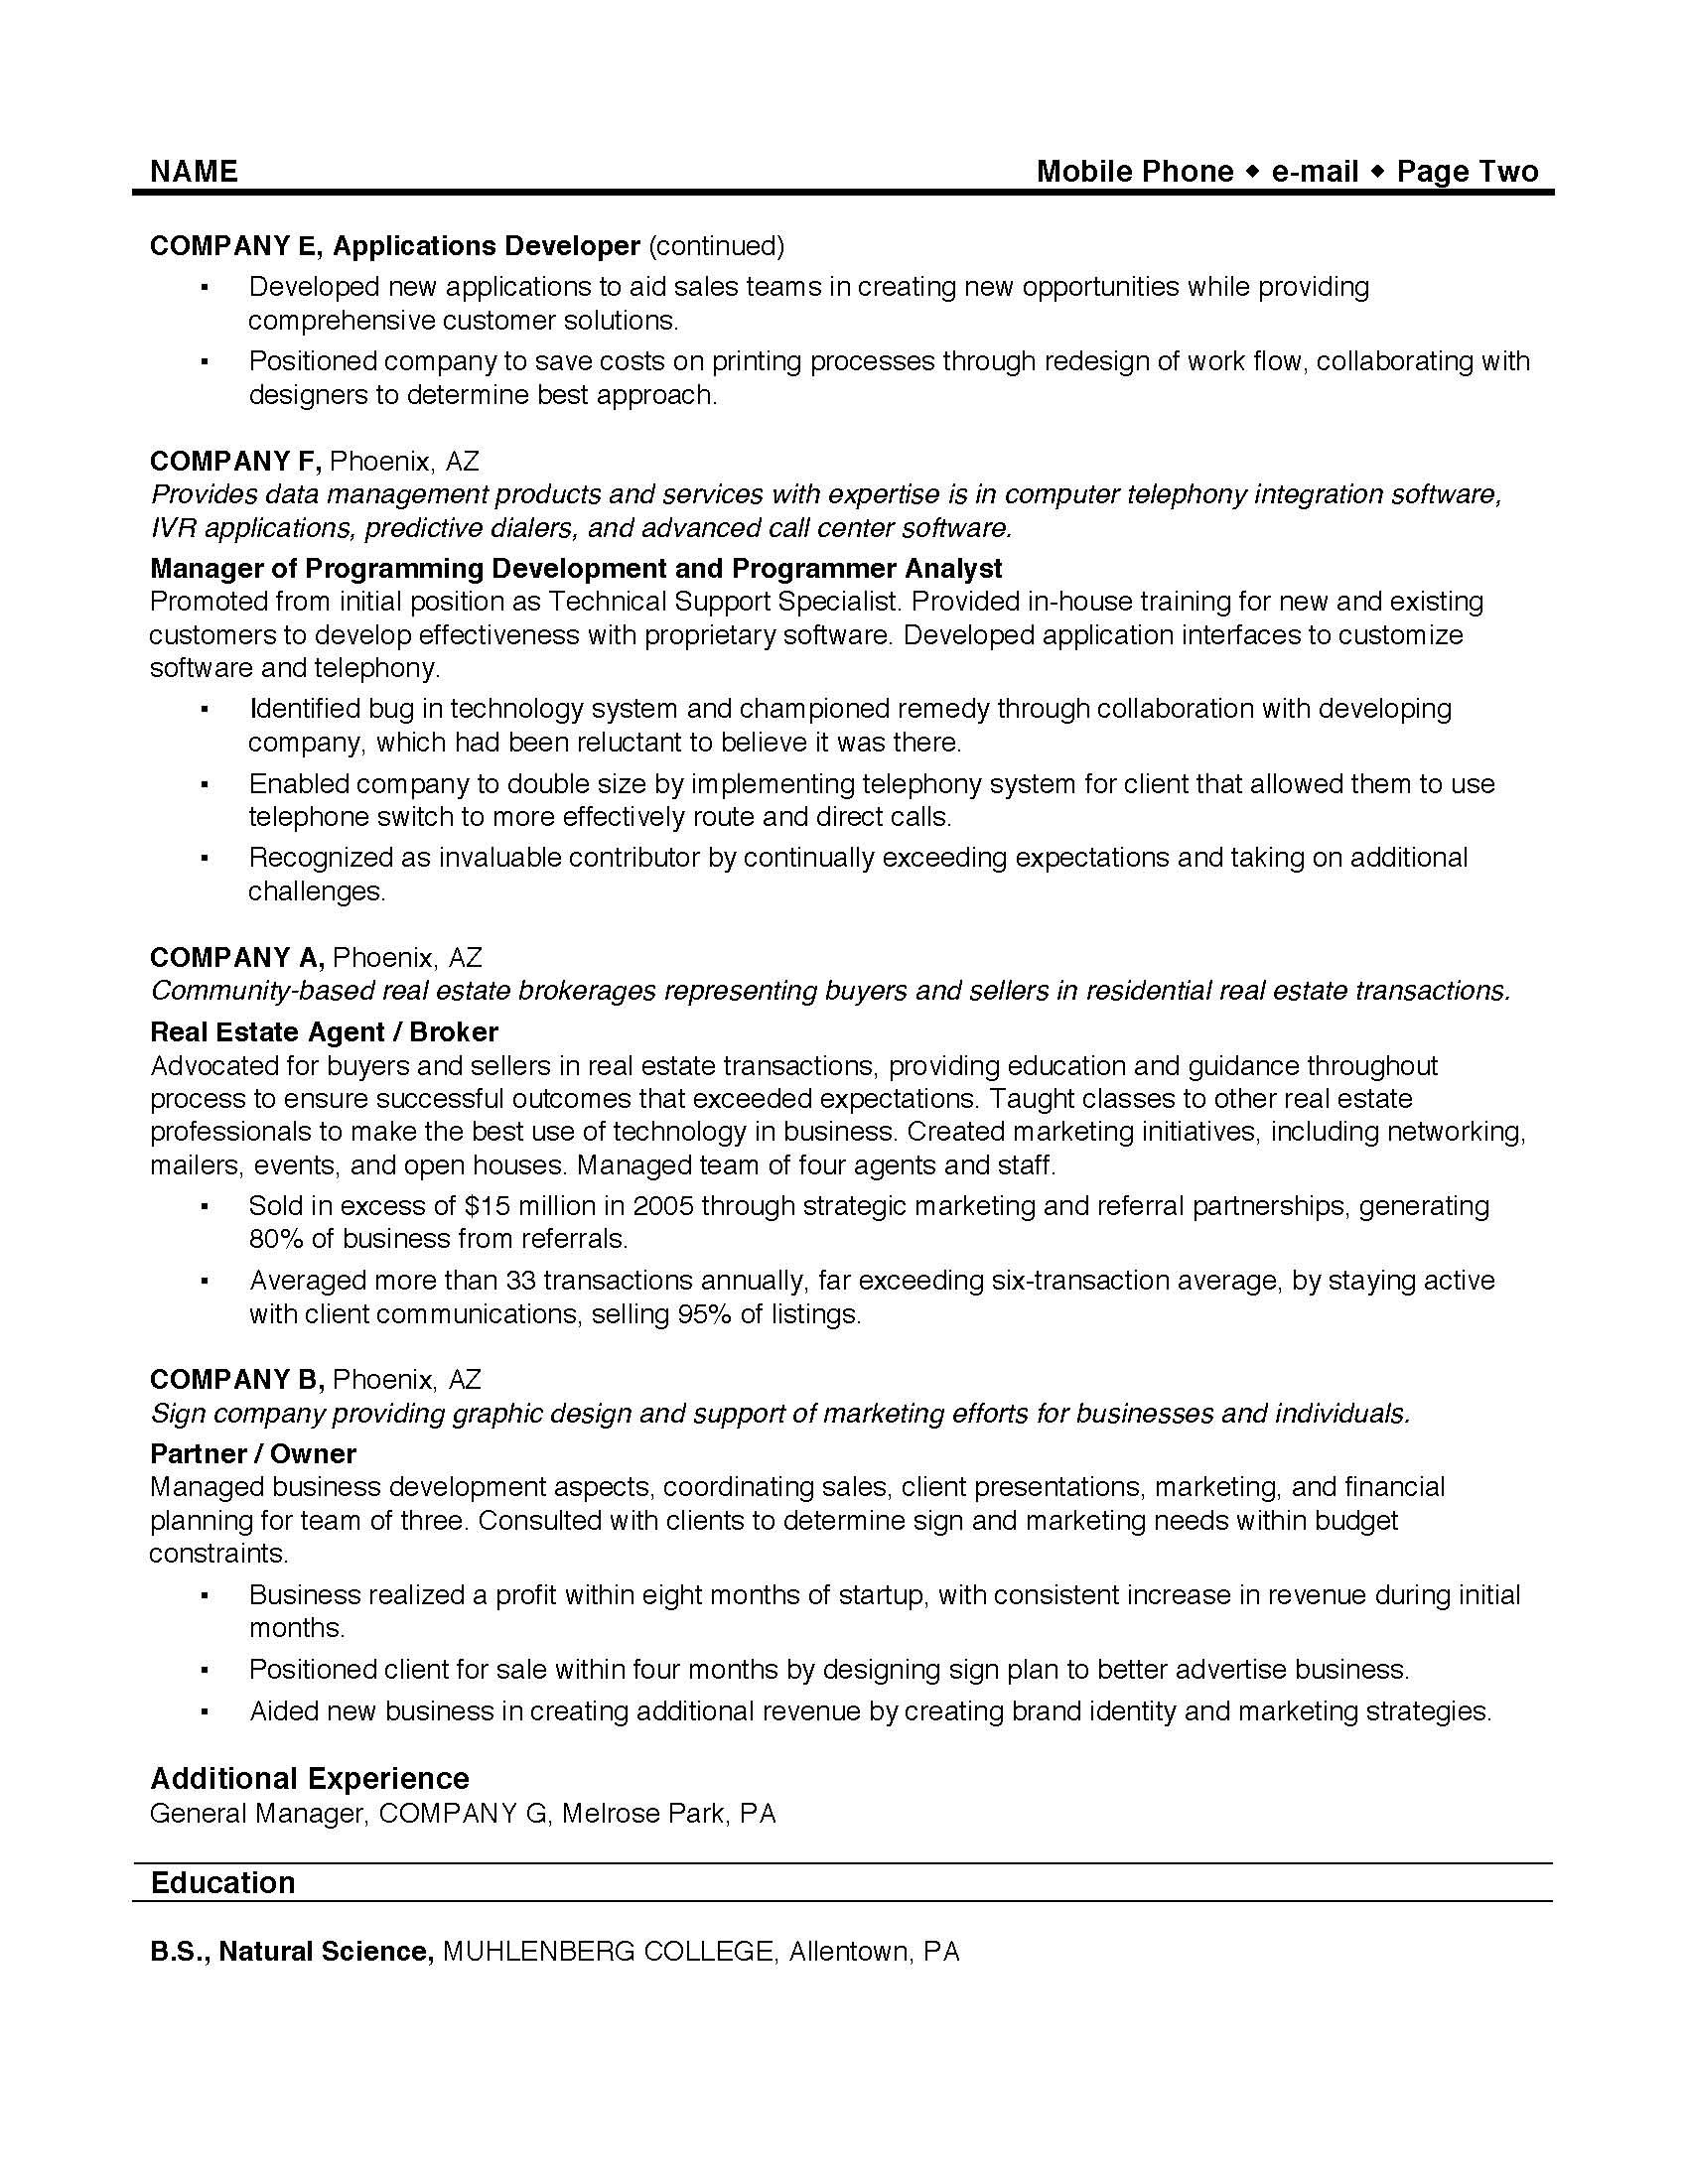 Resume Format College Student Pics Photos Sample College Student Resume Examples Samples Resumes